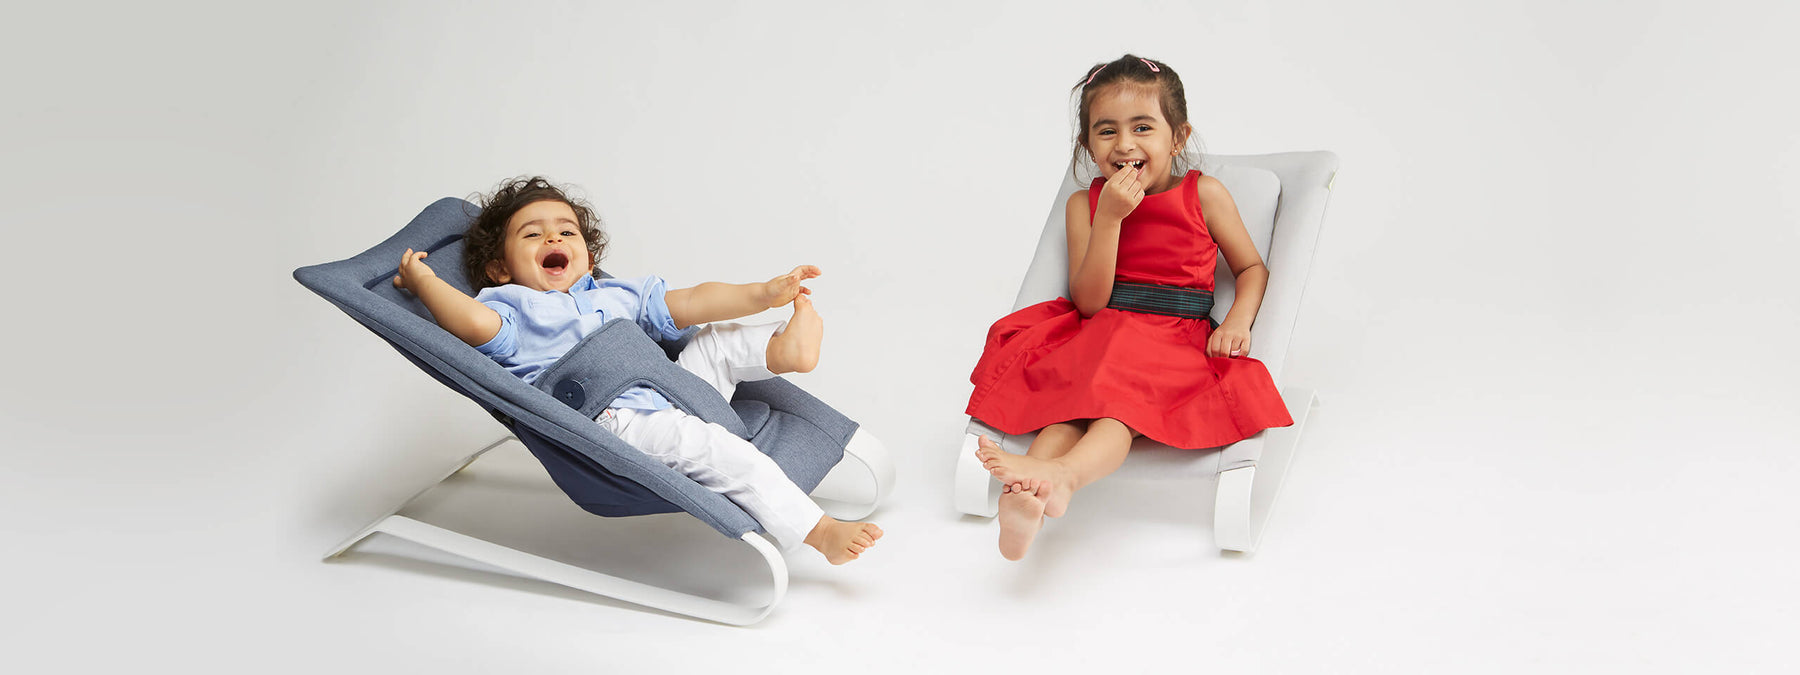 Bombol baby bouncer with kids